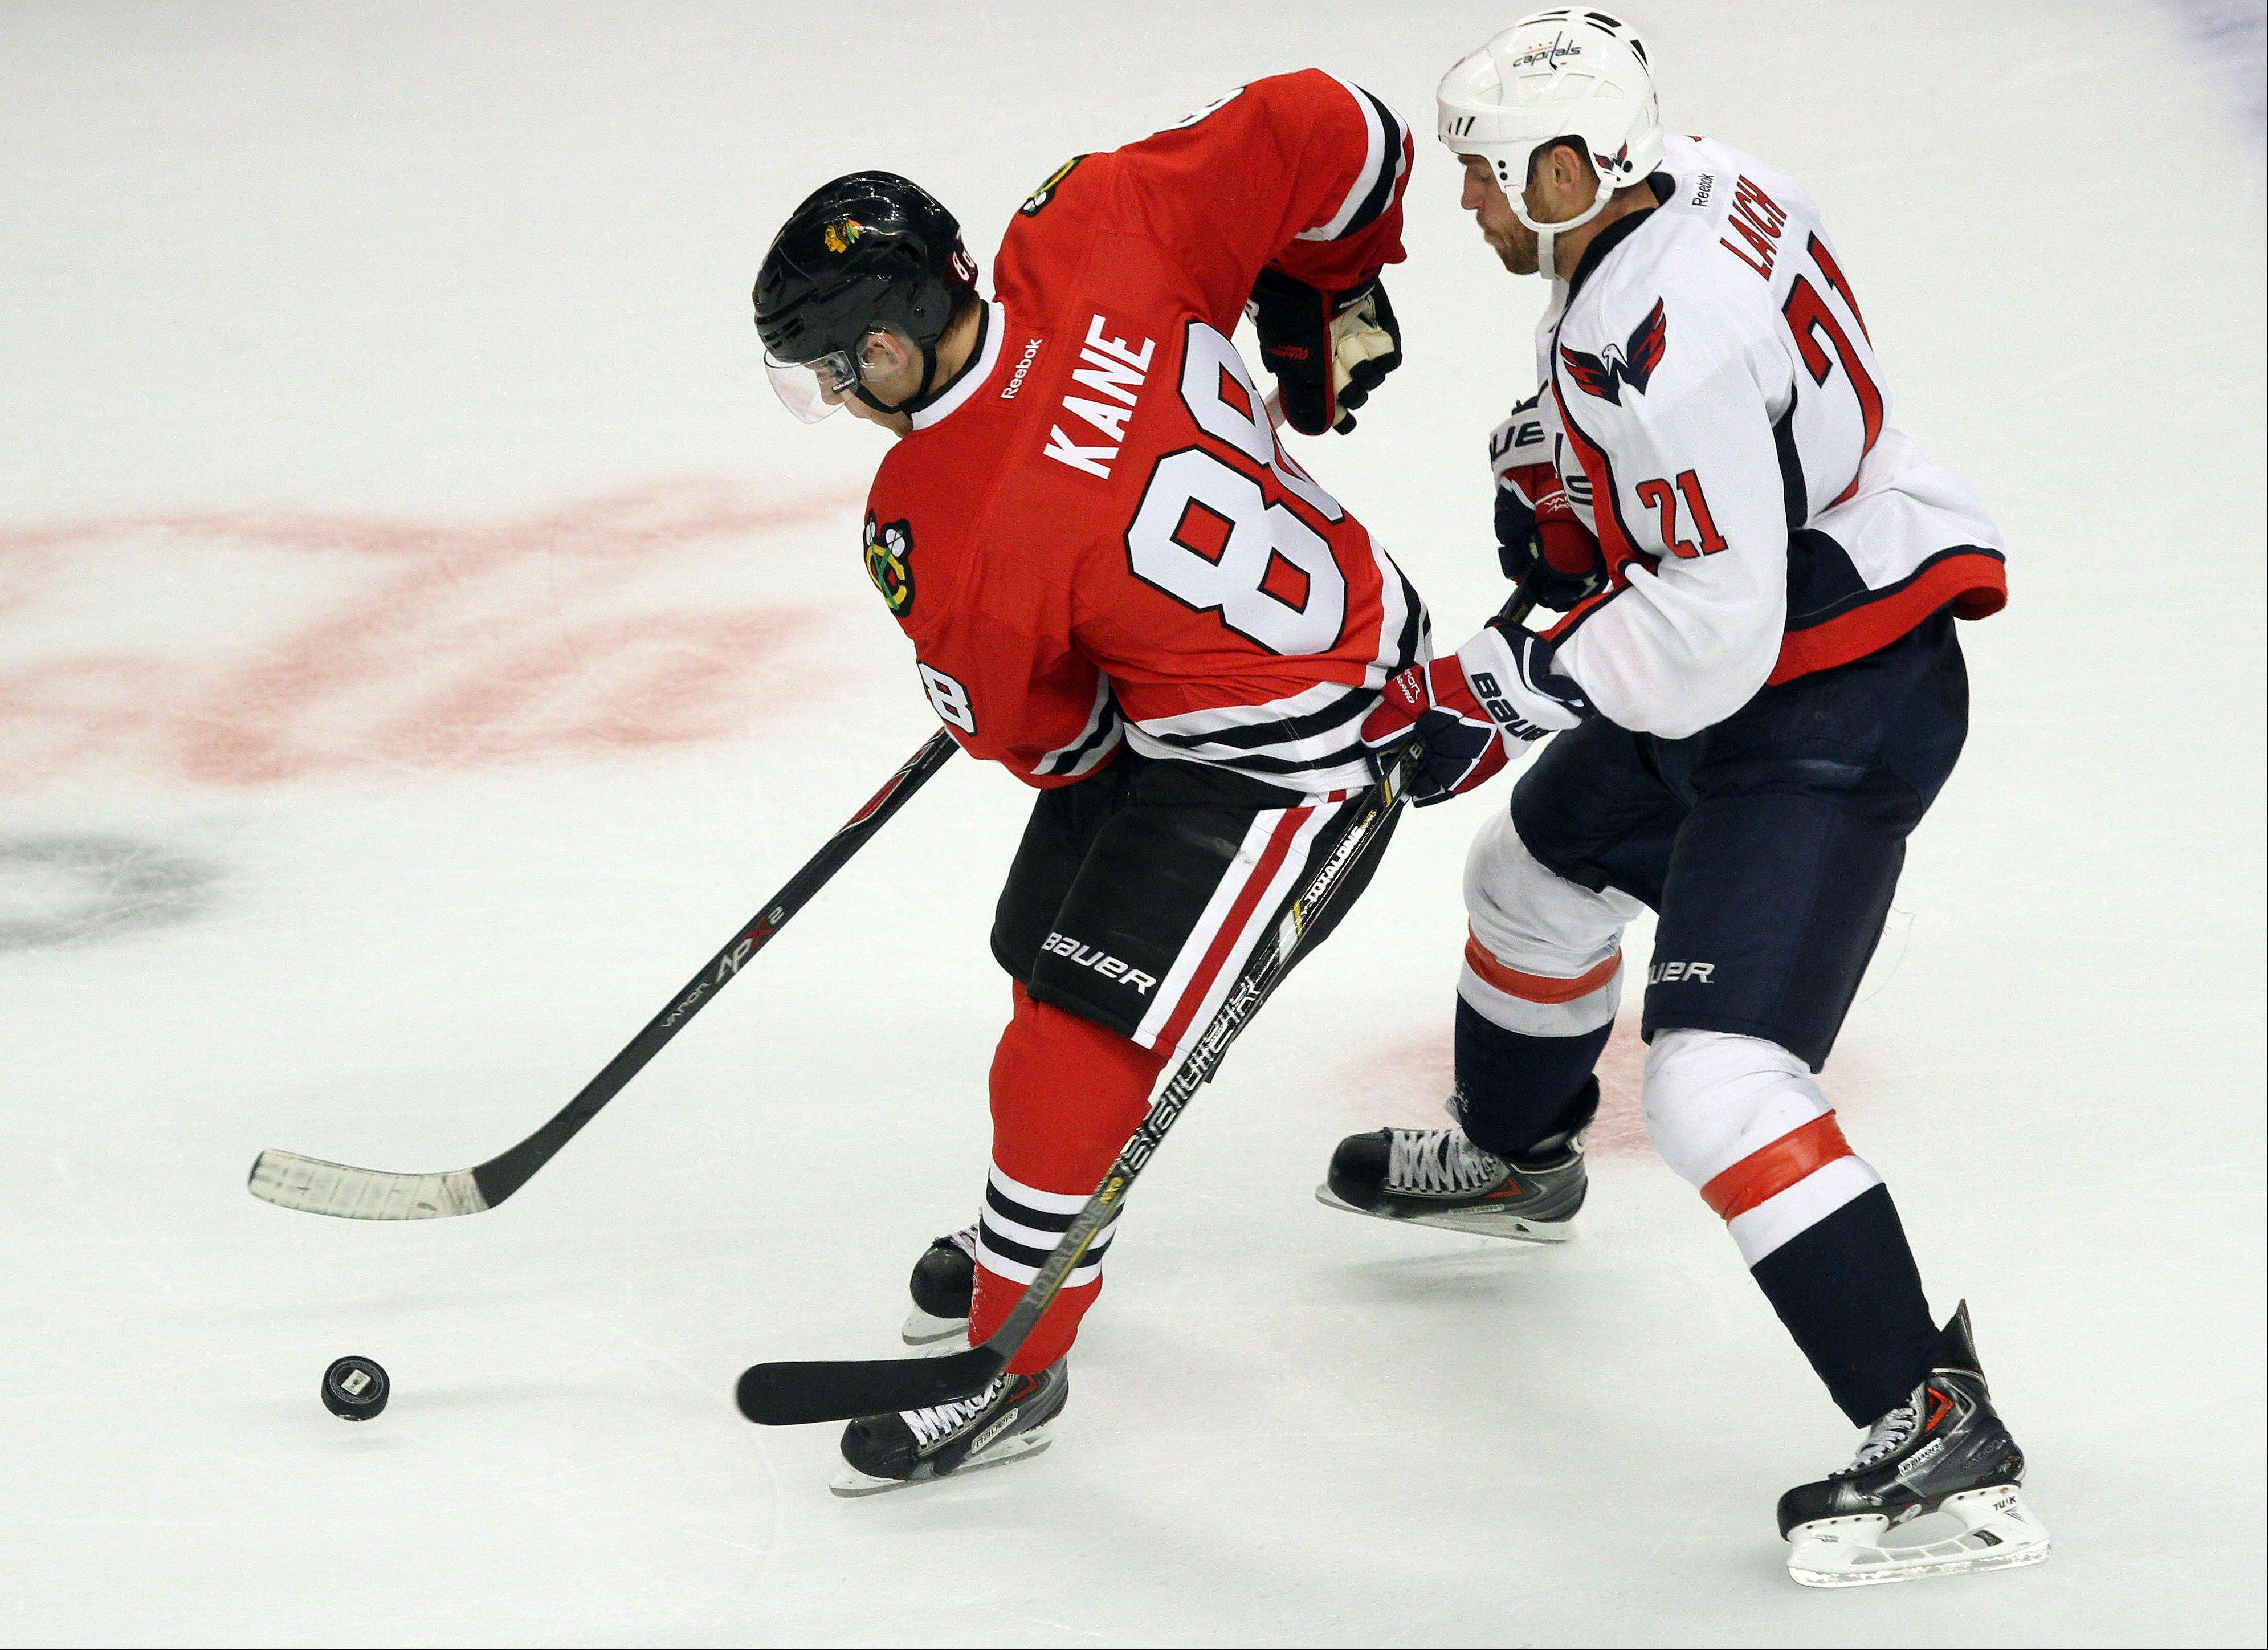 Chicago Blackhawks right wing Patrick Kane drives on Washington Capitals center Brooks Laich.